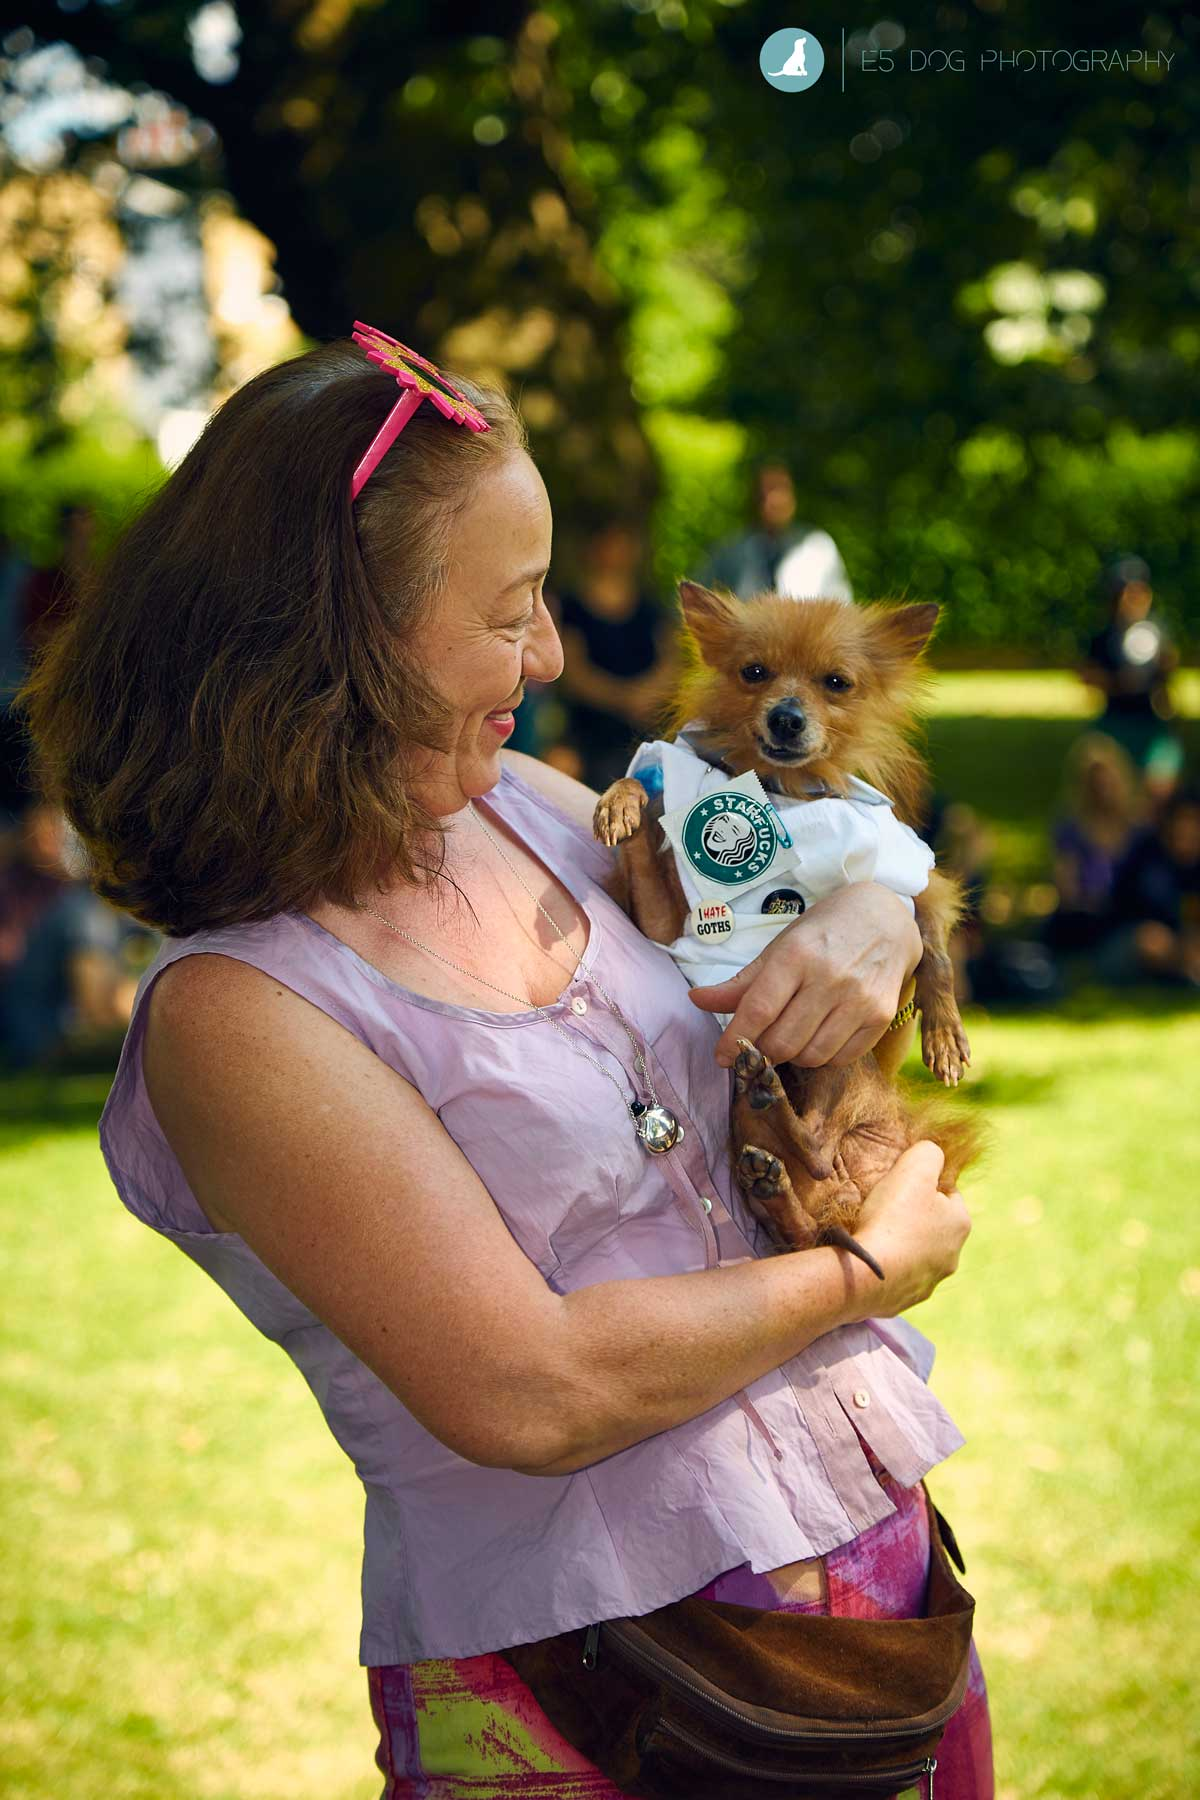 E5-Dog-Photography-All-Dogs-Matter-Visions-Festival-Hackney-2016-23